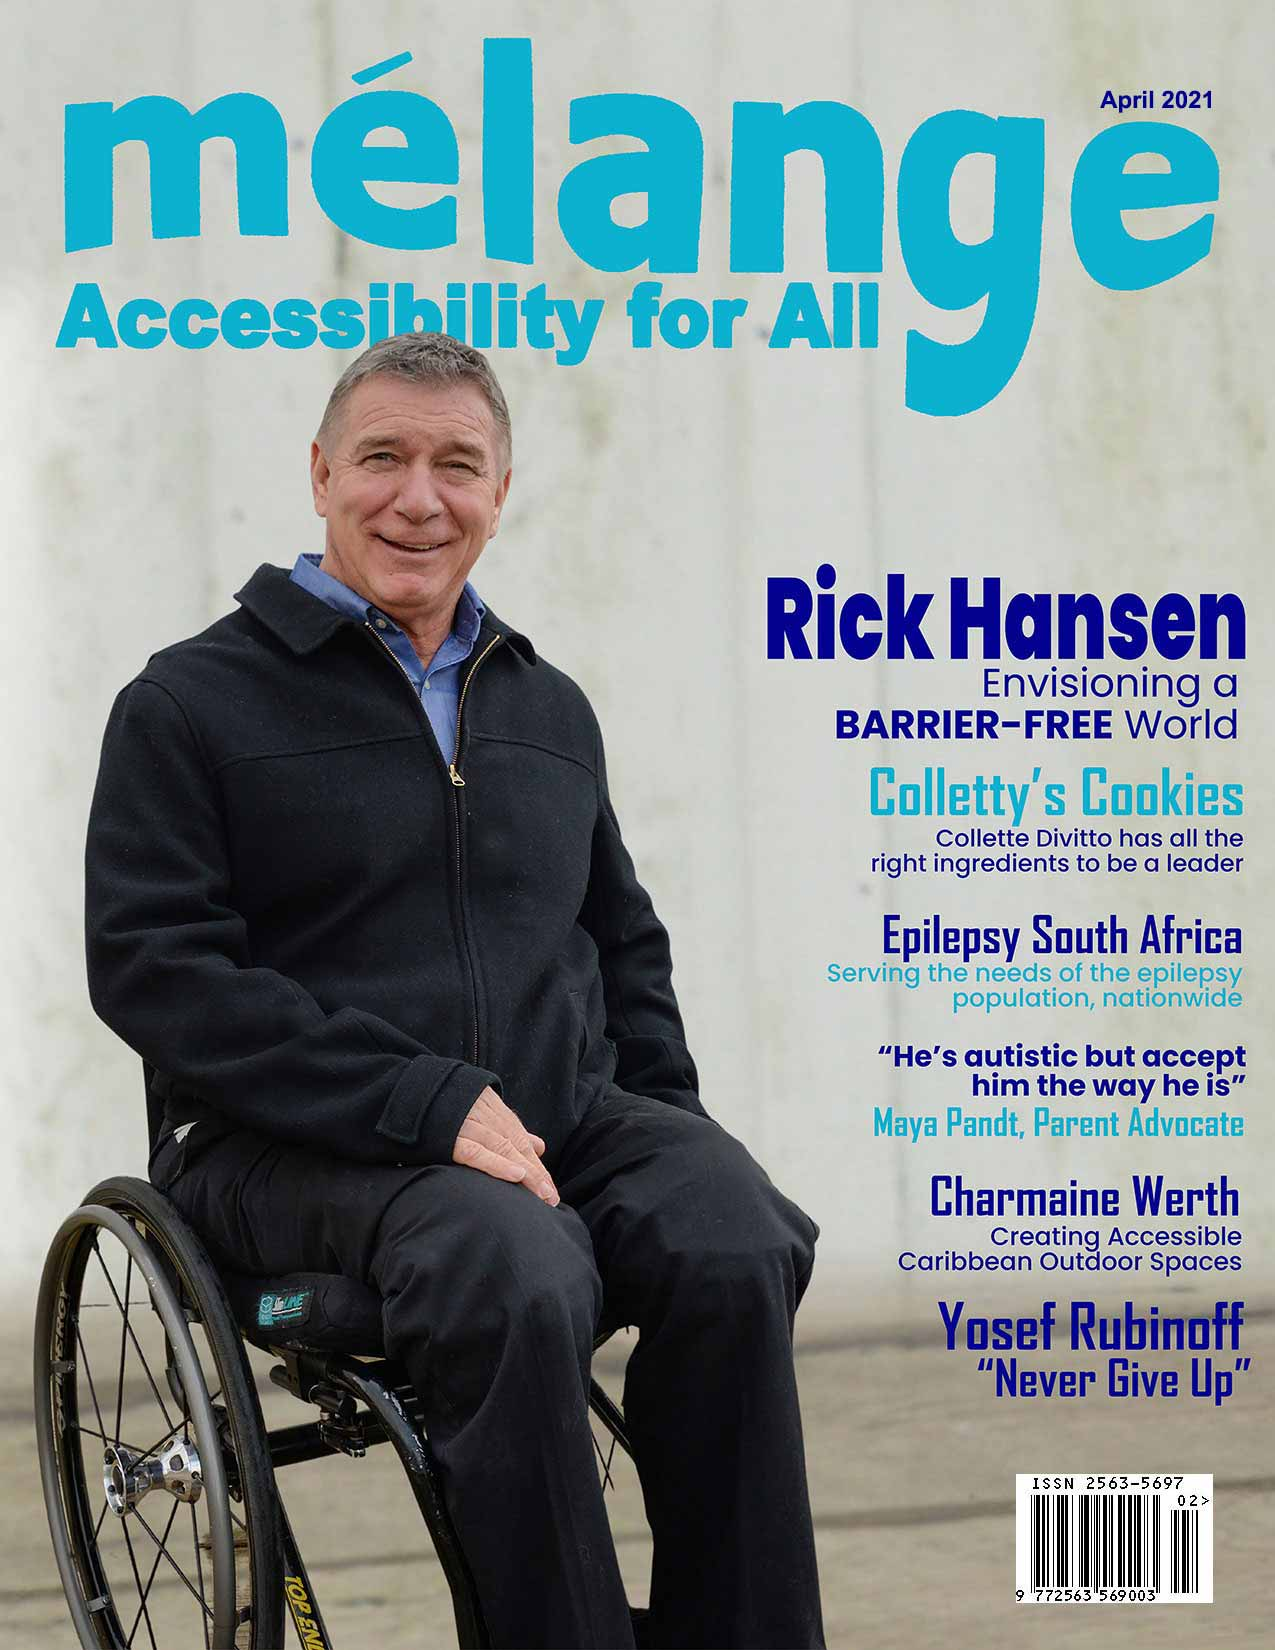 April Accessibility for all magazine cover with a photo of Rick Hansen